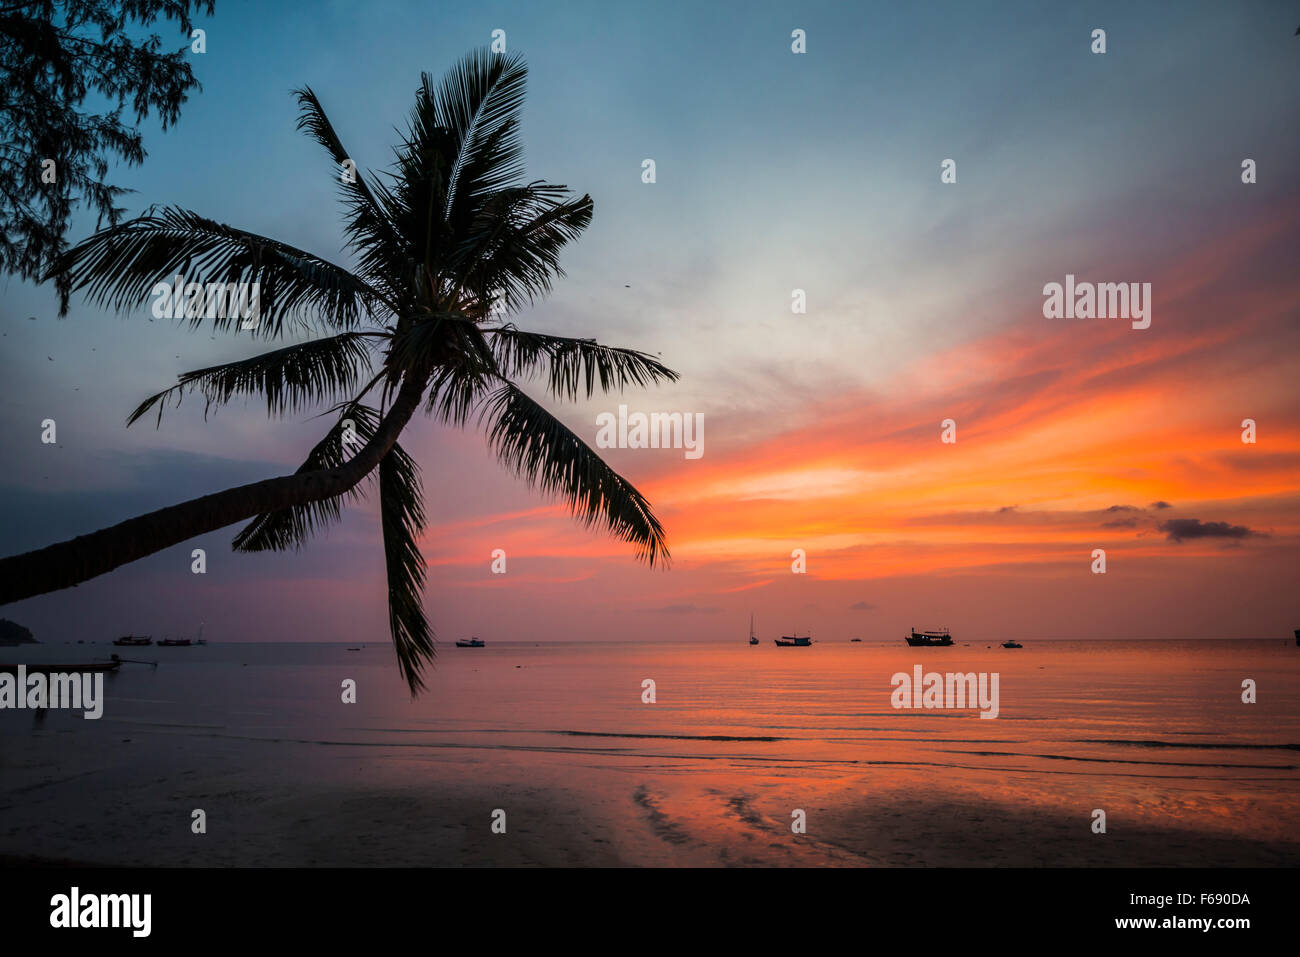 Palm tree at sunset, by the sea, South China Sea, Gulf of Thailand, Koh Tao, Thailand - Stock Image